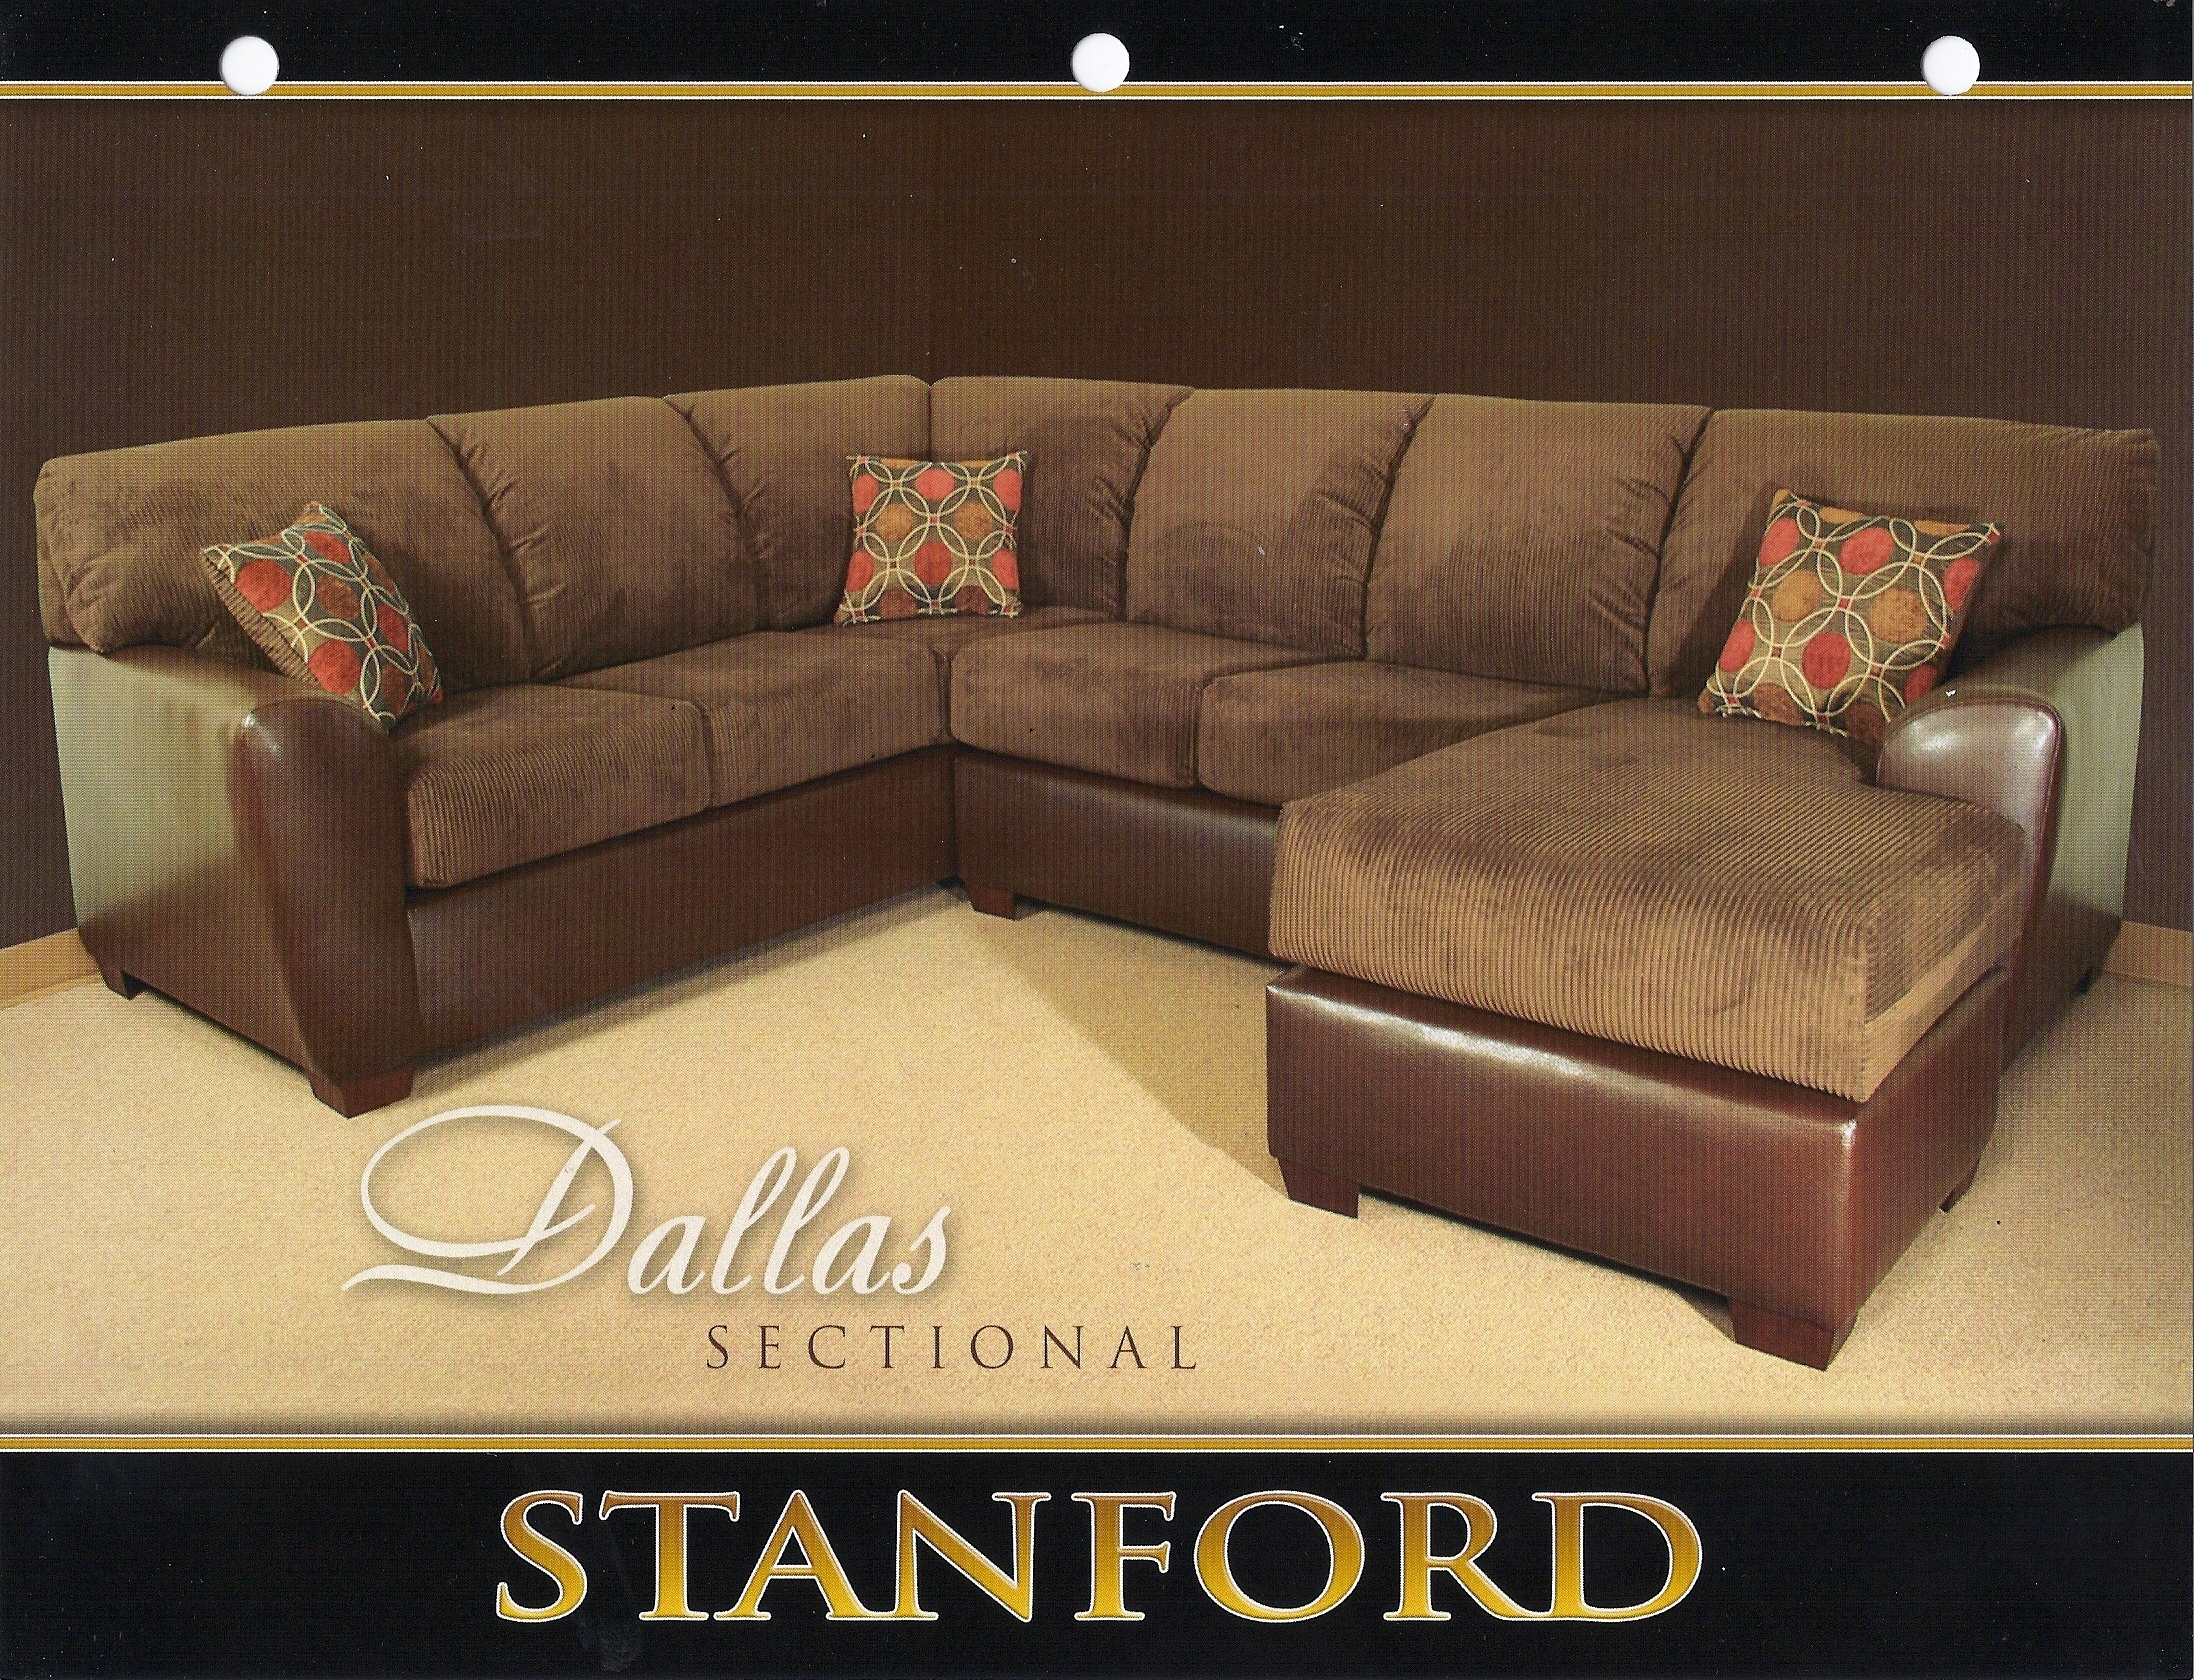 Sectional Sofa Design: Comfort Sectional Sofas Dallas Modern Intended For Dallas  Sectional Sofas (Image